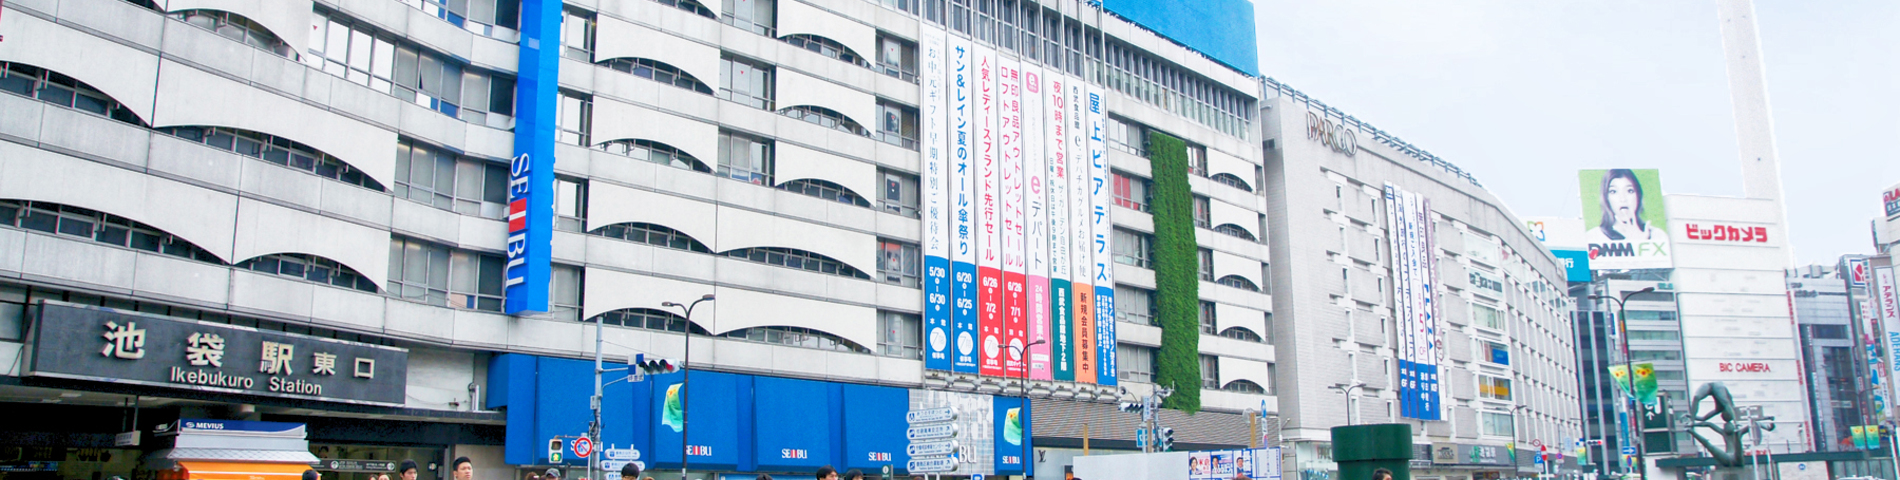 ISI Language School - Ikebukuro Campus bild 1